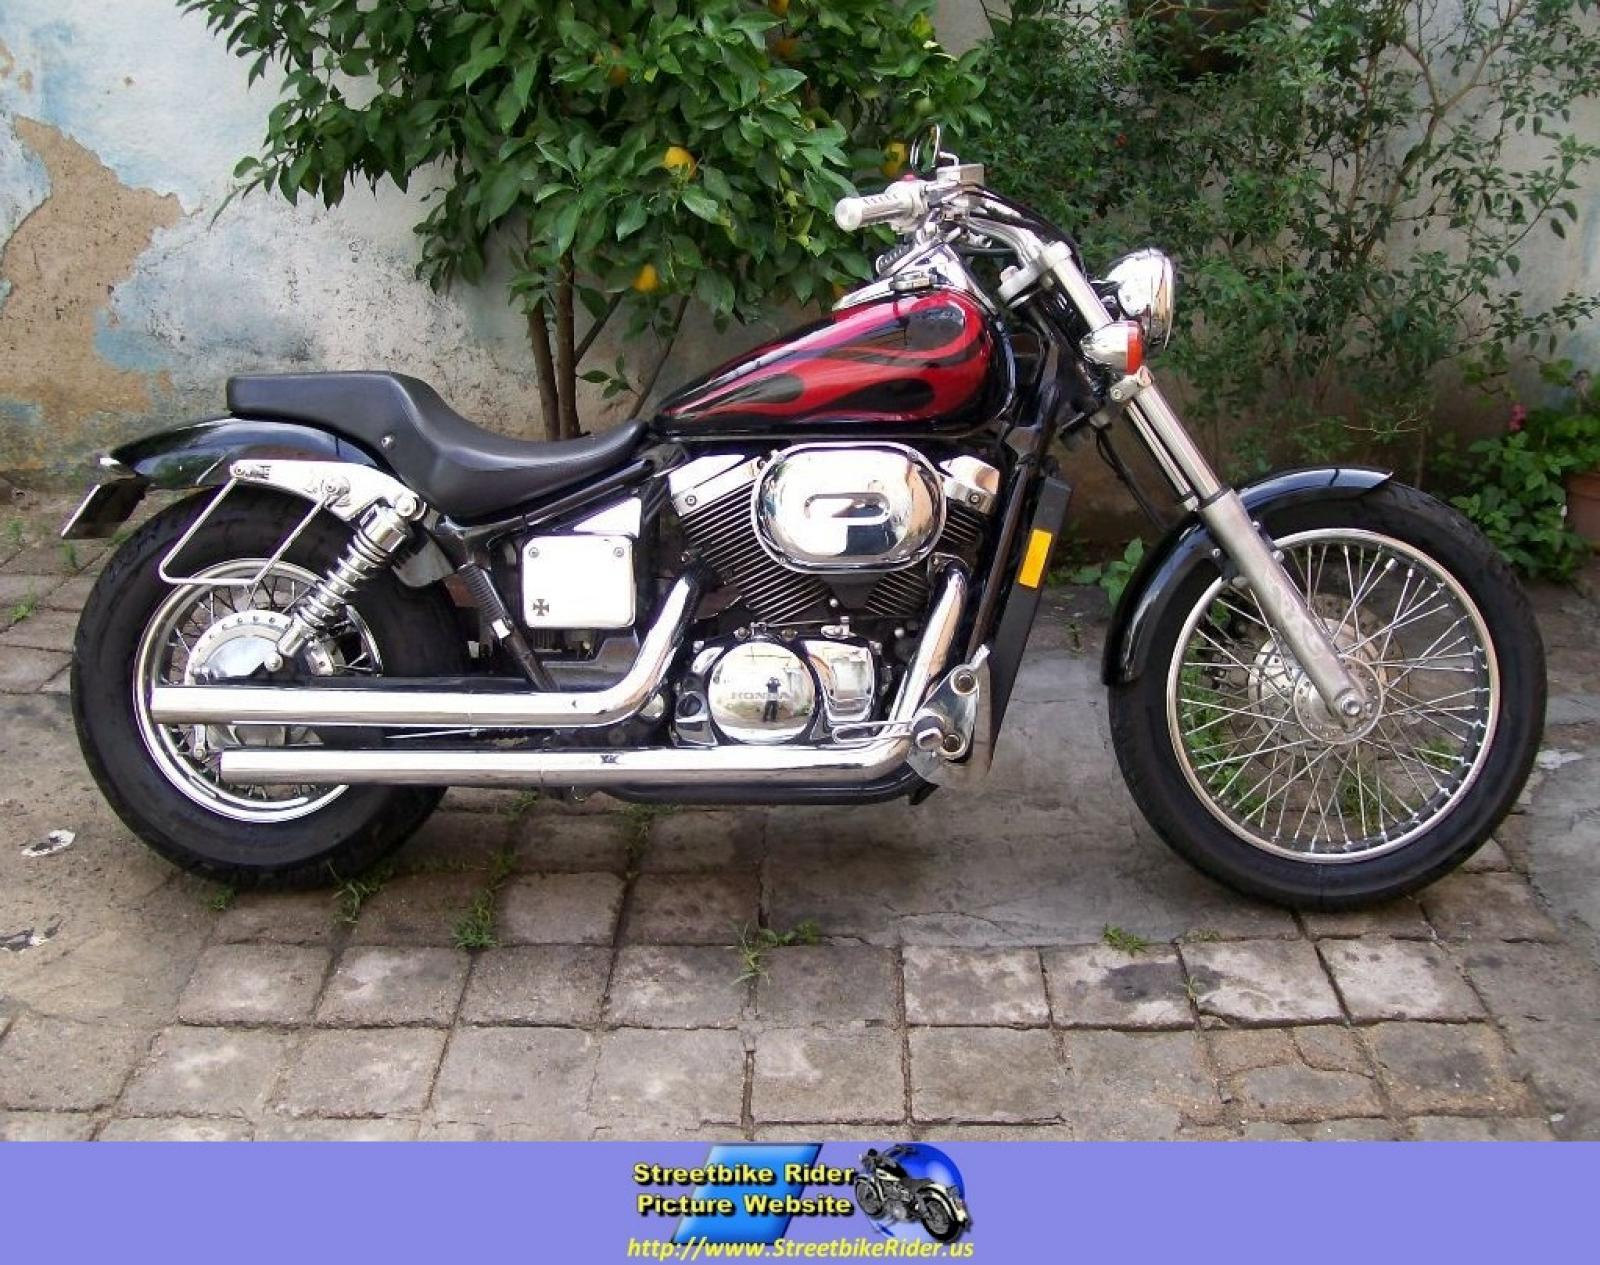 Honda Shadow Spirit 750 2005 #1 800 1024 1280 1600 Origin